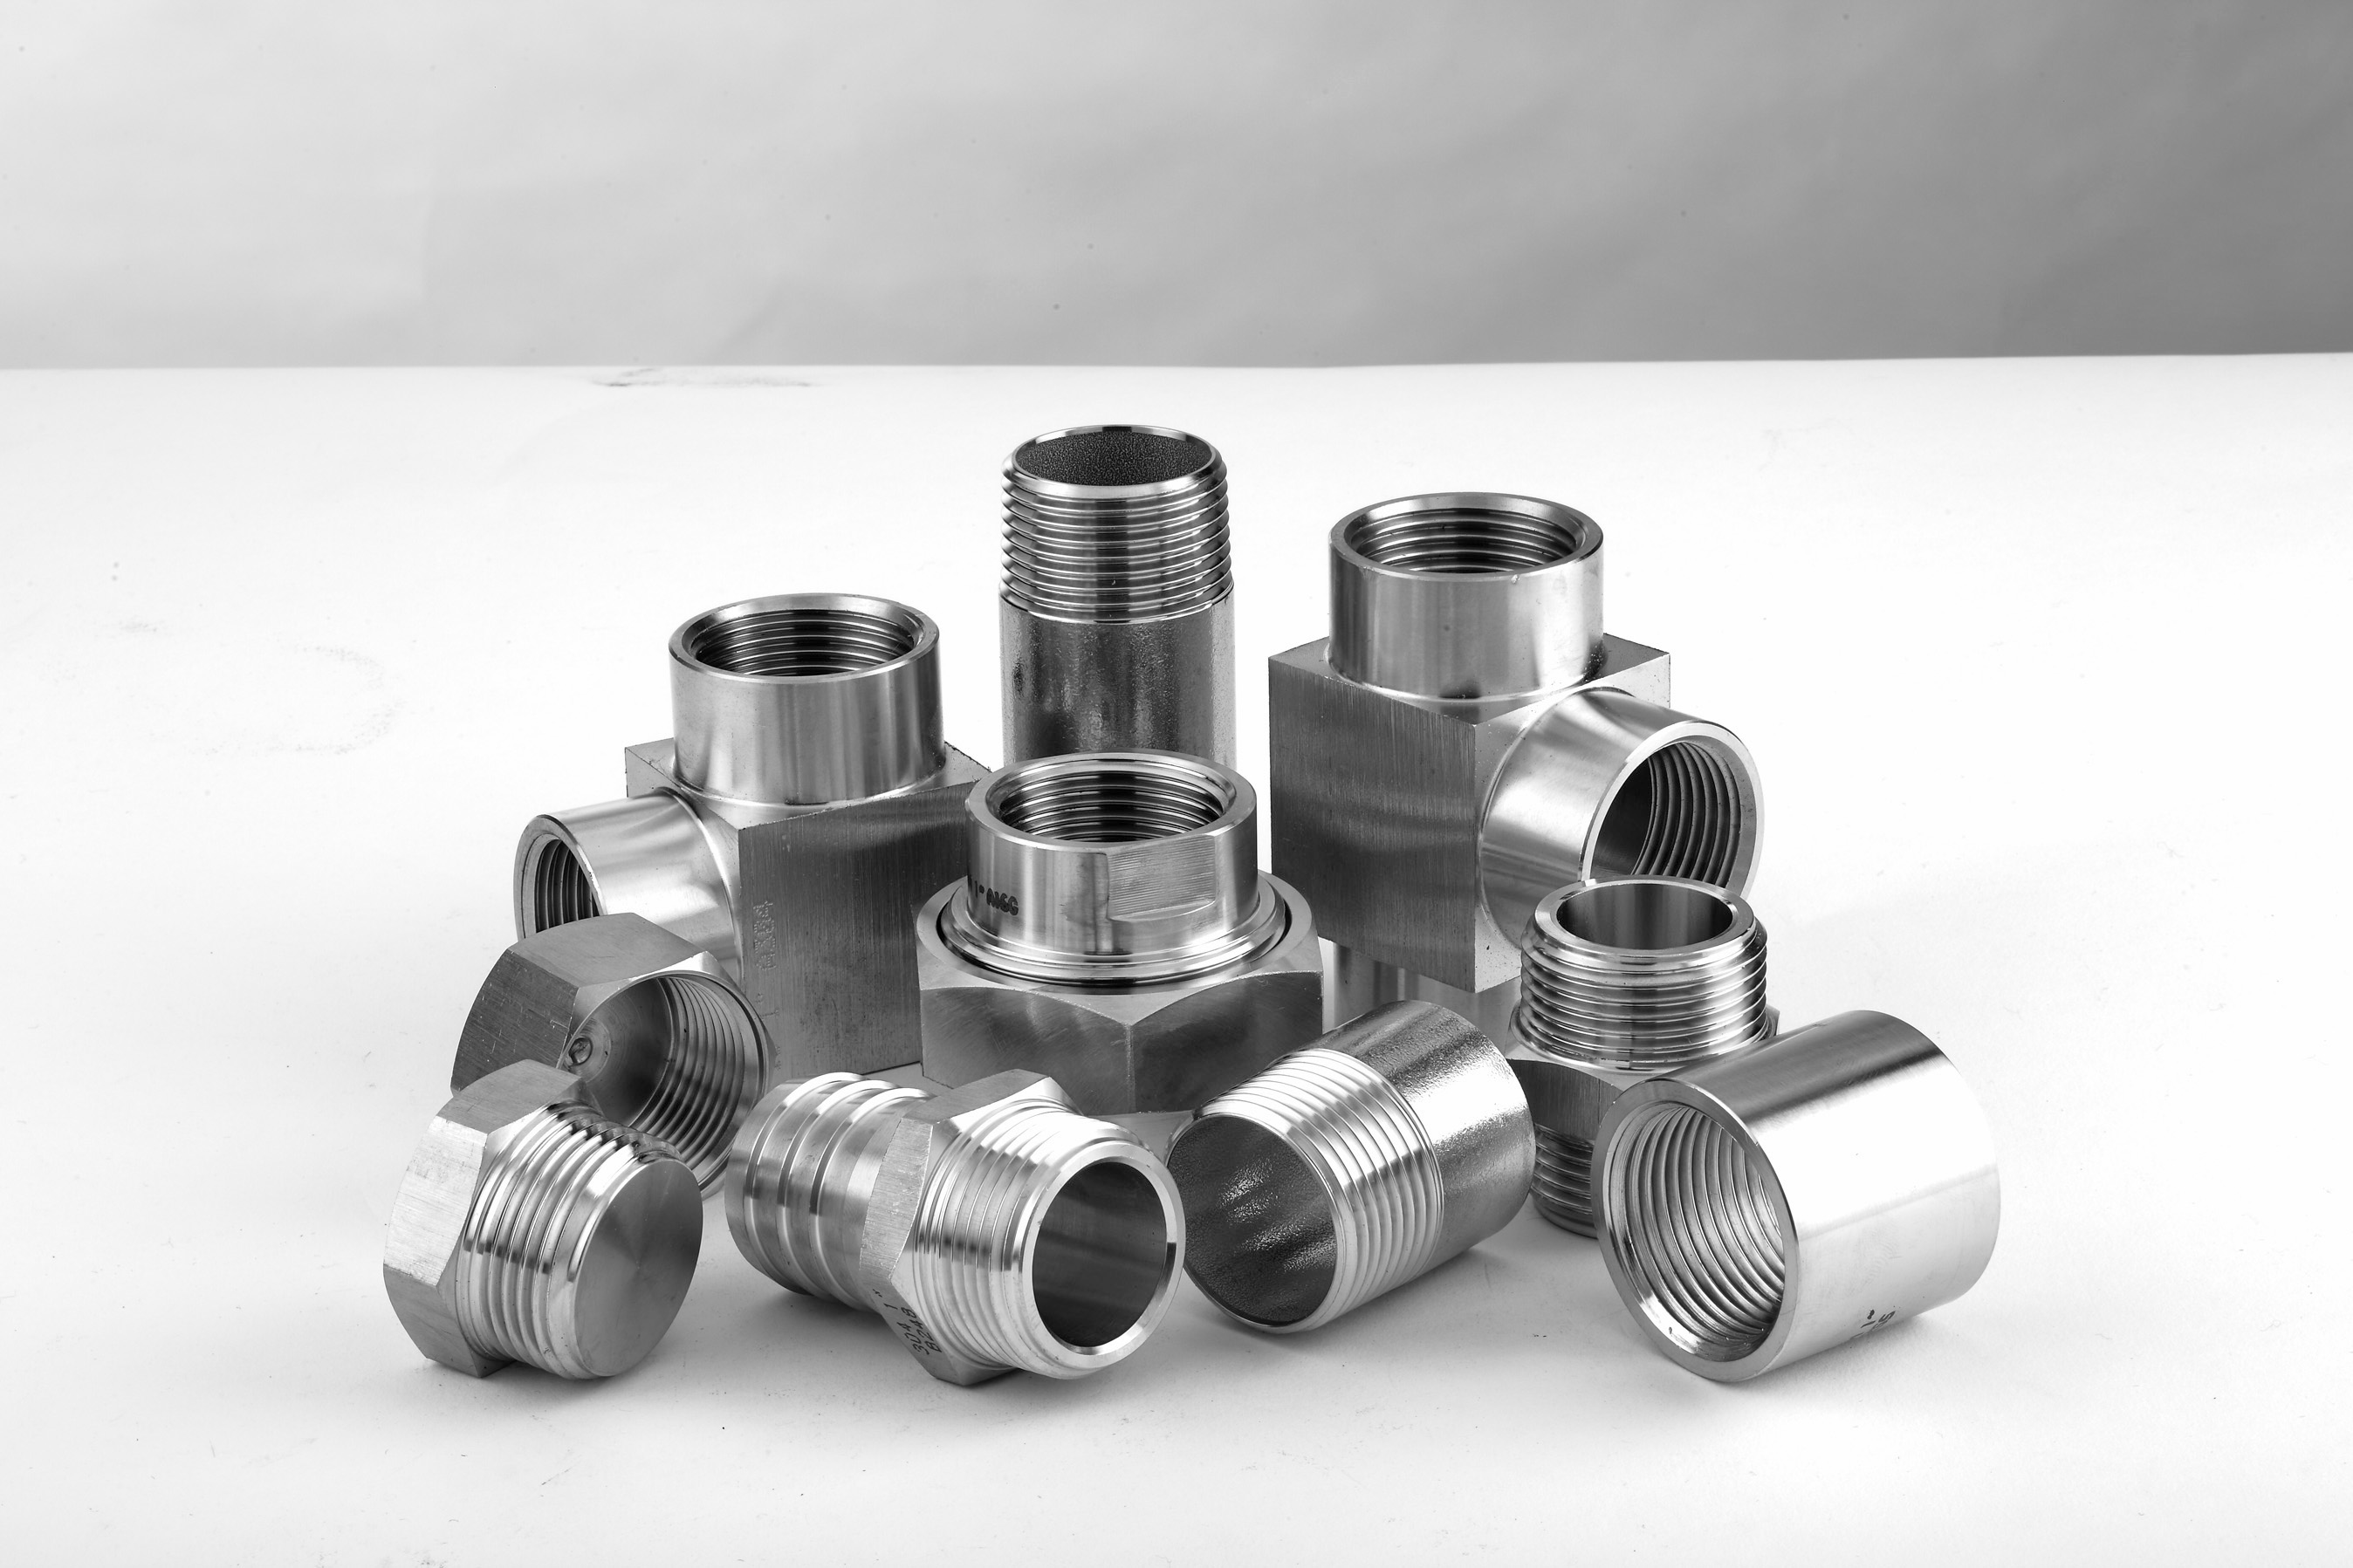 COUPLING, WELDING NIPPLES AND THREADED BAR FITTINGS